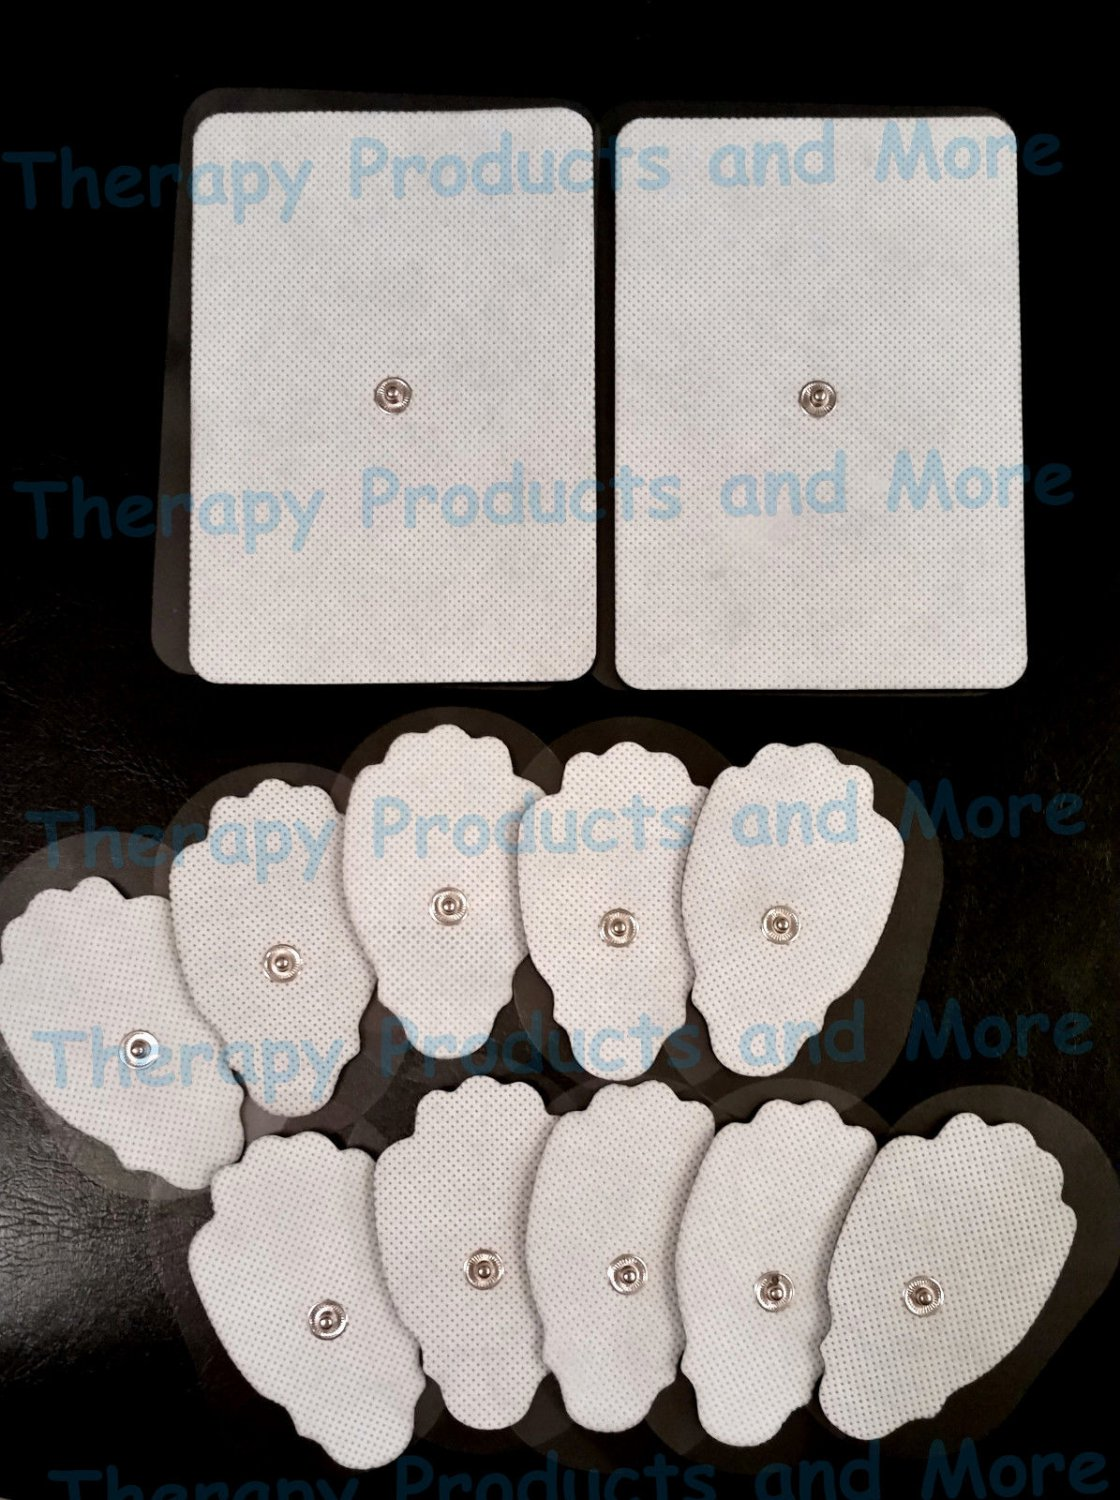 2 EXTRA LARGE + 10 LG MASSAGE PADS ELECTRODES FOR PINOOK IREST IQ PALM PCH TENS